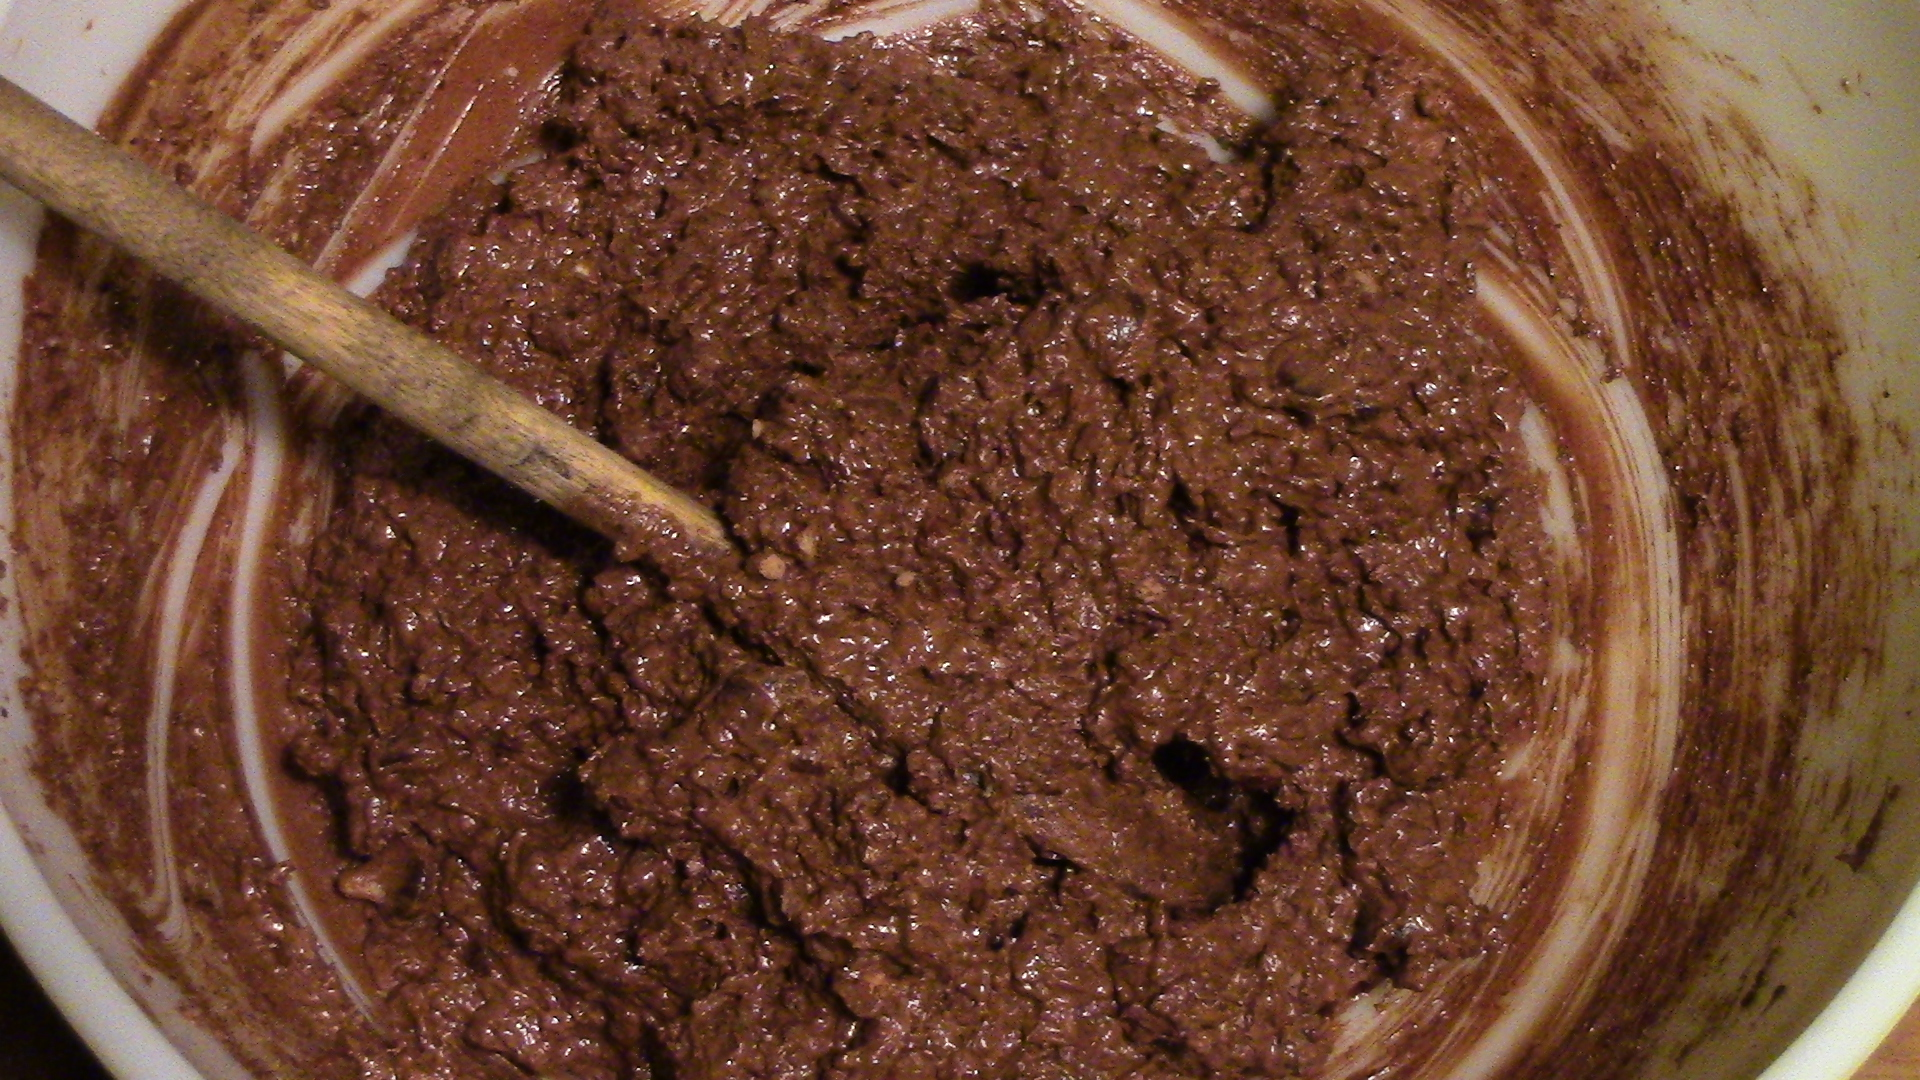 The cookie dough, well mixed and ready for scooping onto the baking sheet.